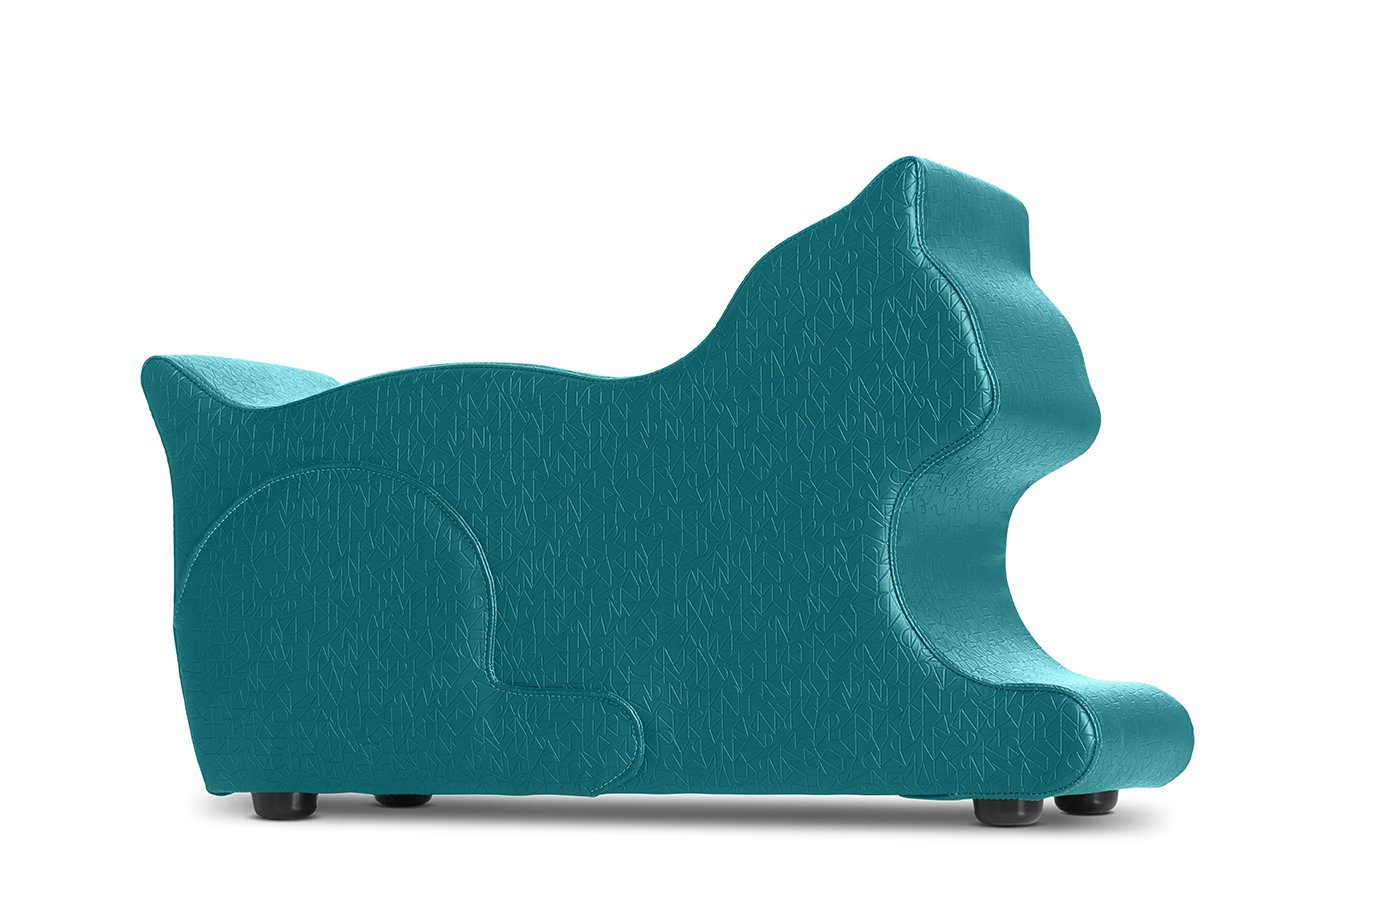 Logic Furniture MEOWXTL17 Meow Ottoman, Teal